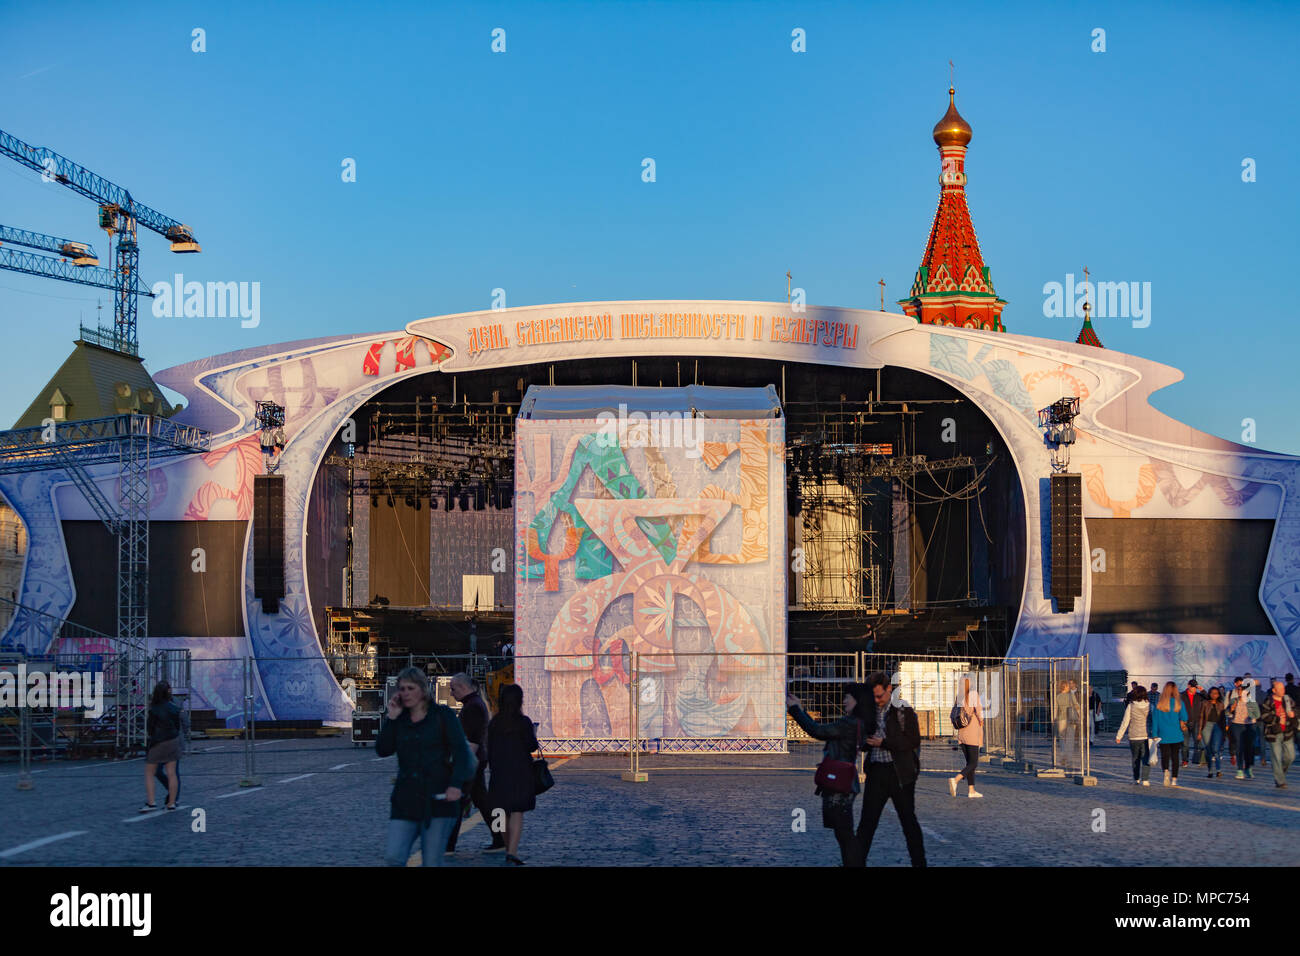 MOSCOW, RUSSIA - May 21, 2018: Preparing a scene on Red Square near the Kremlin for events dedicated to the Day of Slavic Writing and Culture on May 24, 2018 in Moscow - Stock Image